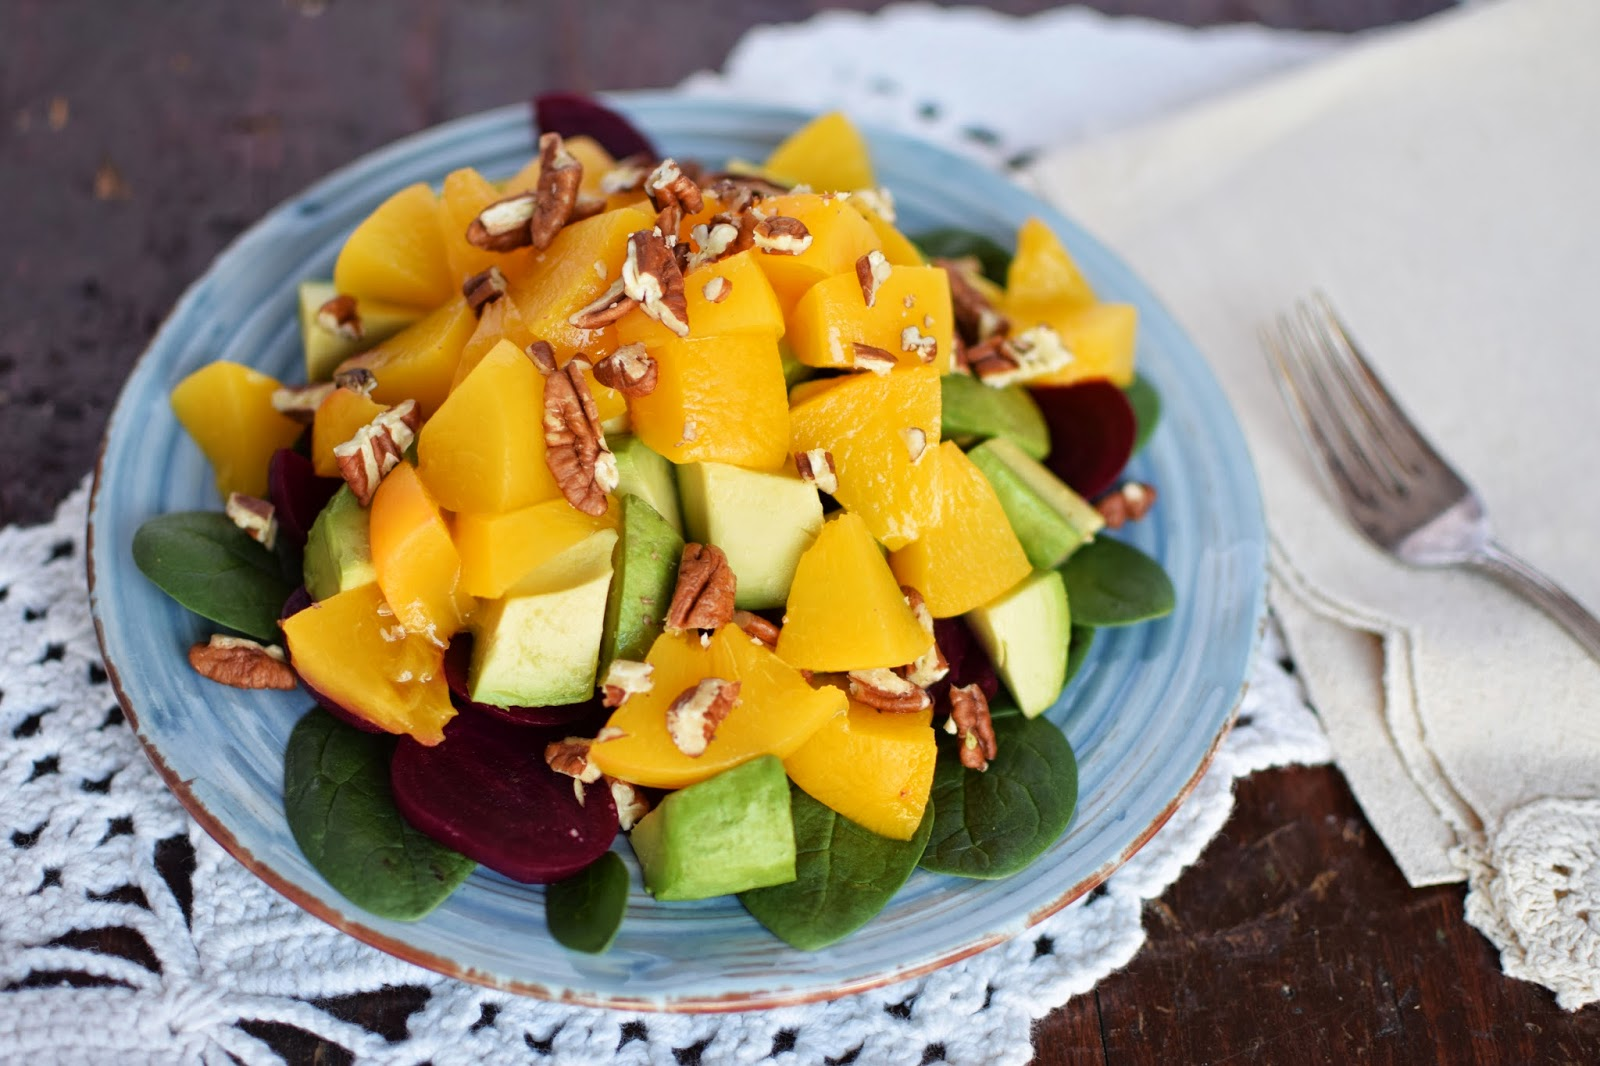 Sunny Peach Salad with California Cling Peaches